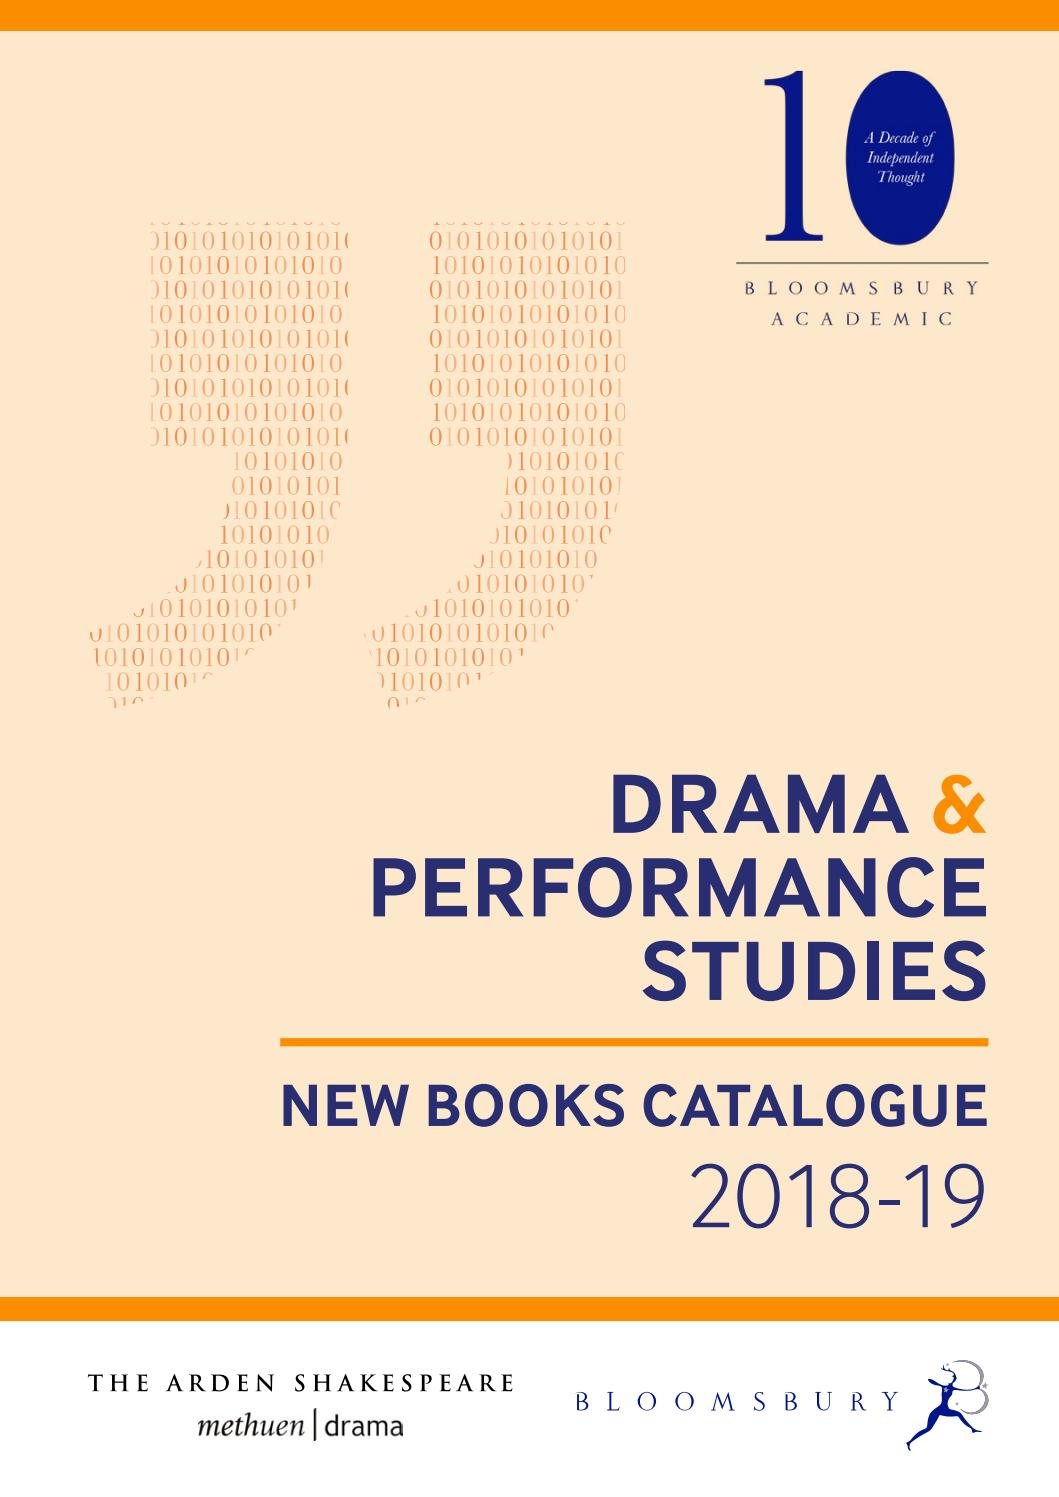 Drama & Performance Studies Catalogue 2018/19 by Bloomsbury Publishing -  issuu